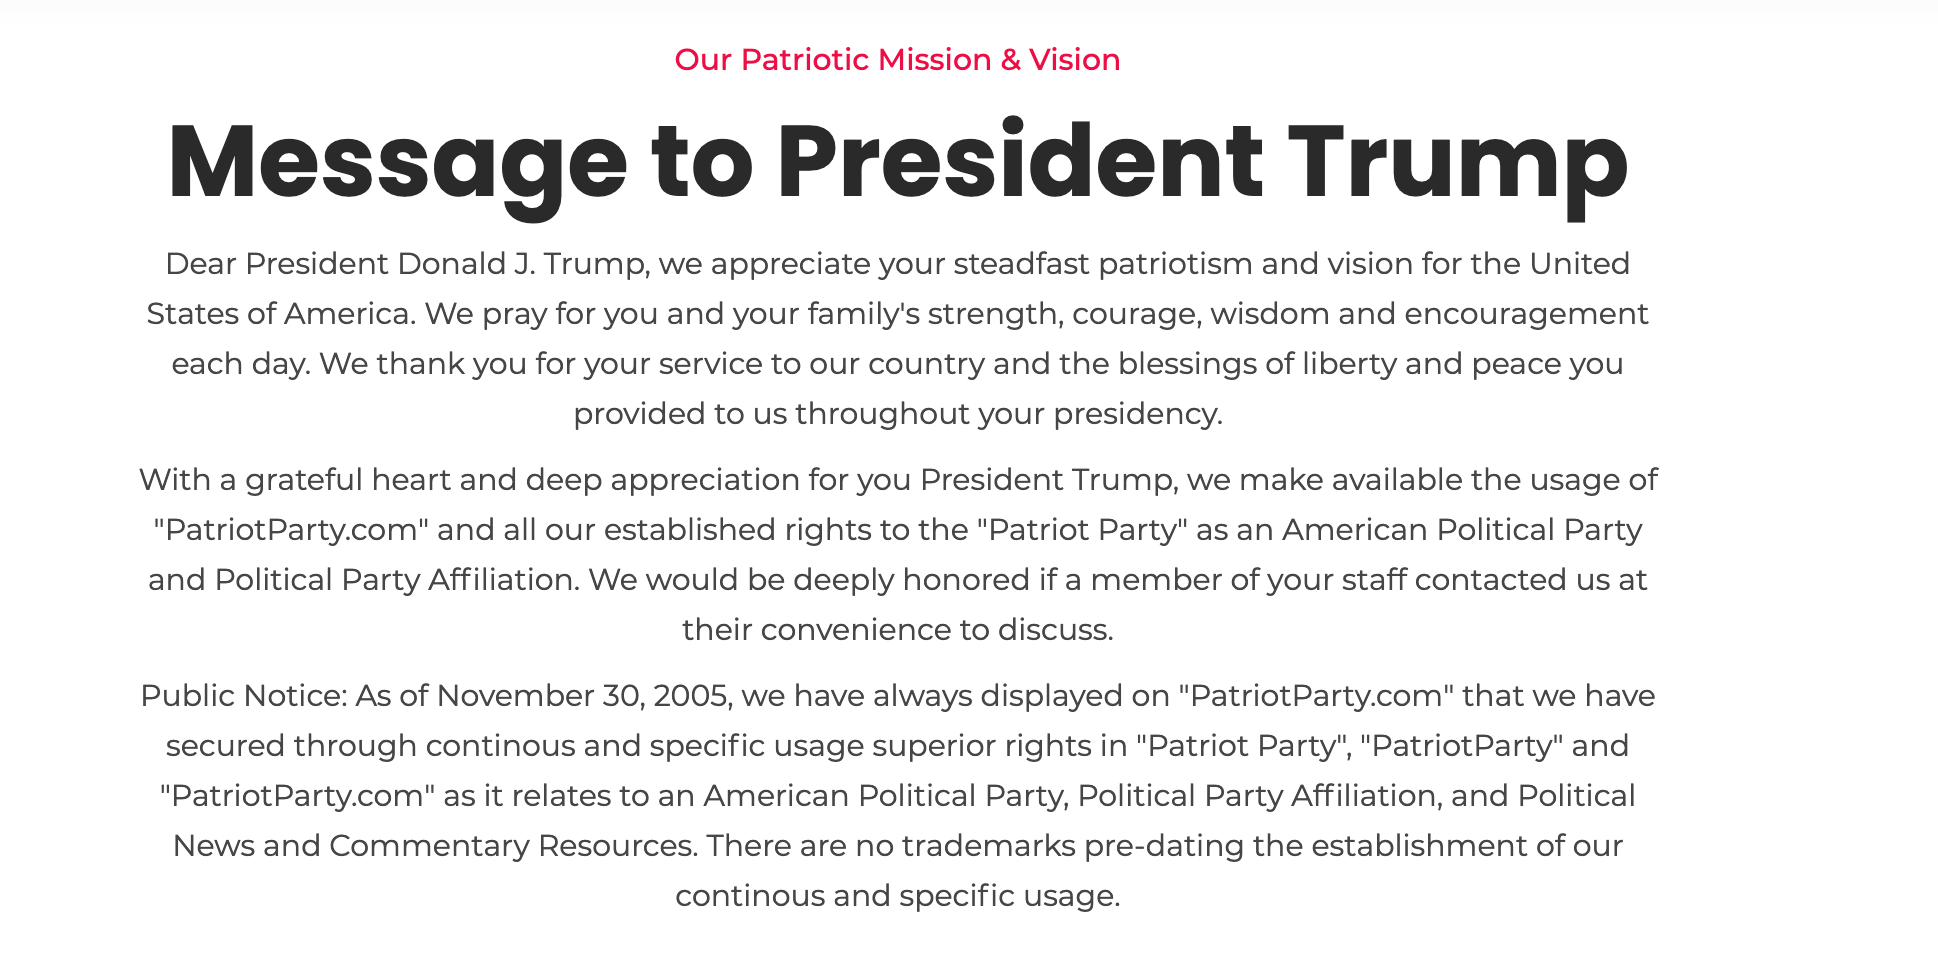 A message left to President Trump by members of the Patriot Party. Photo via screenshot.